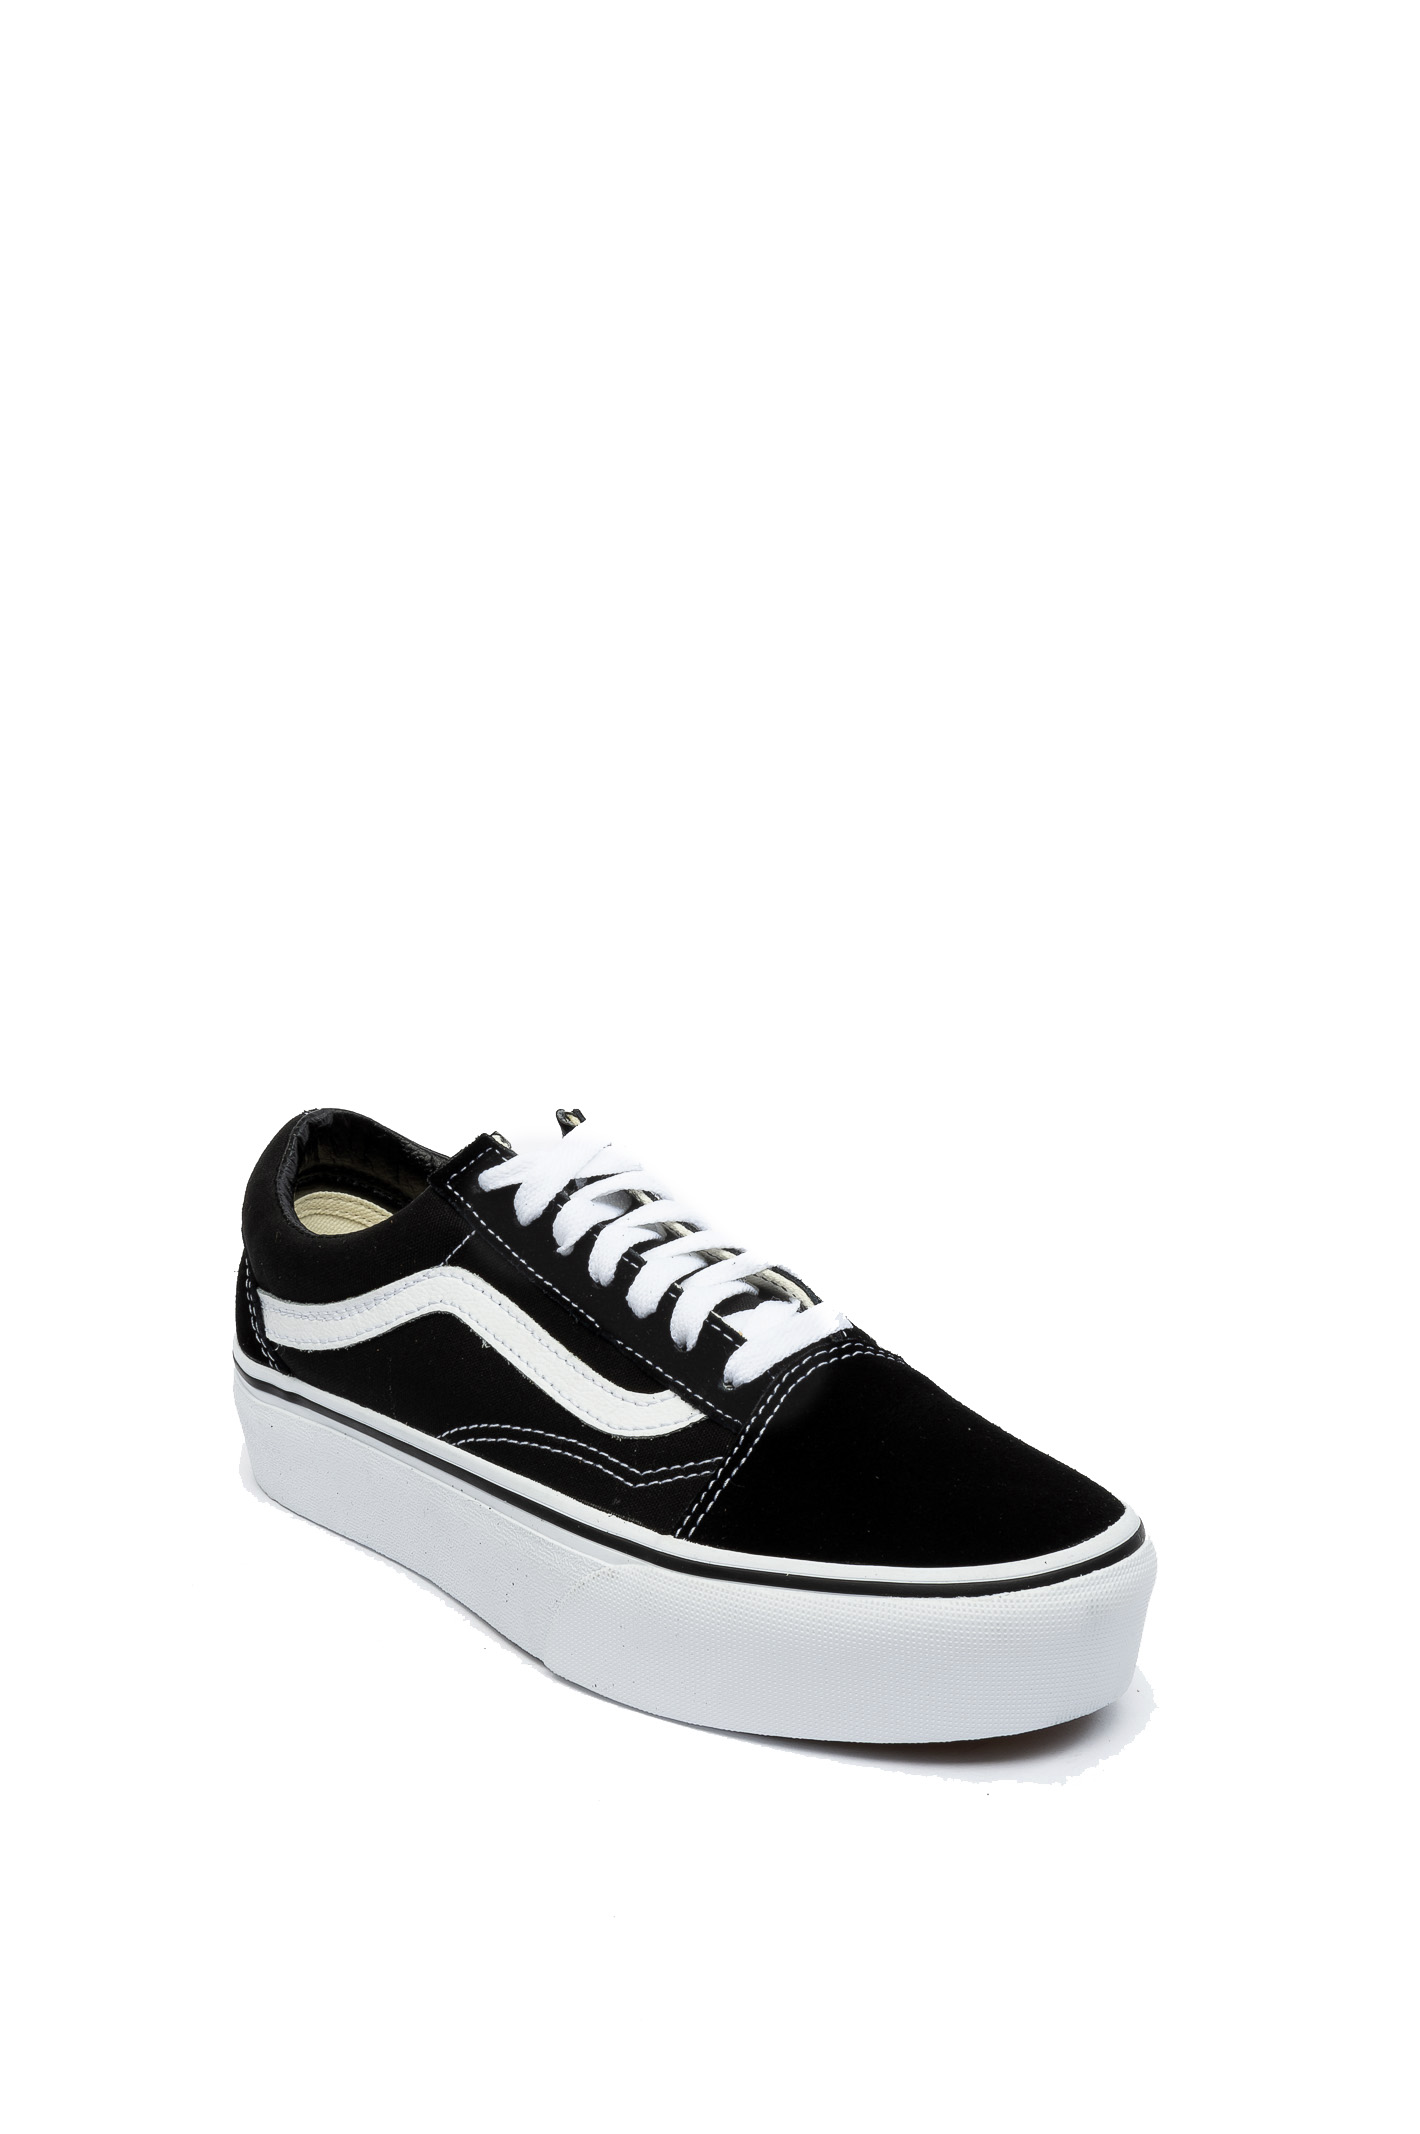 VN0A3B3UY281OLD SKOOL-PLAT-BLK/WHI